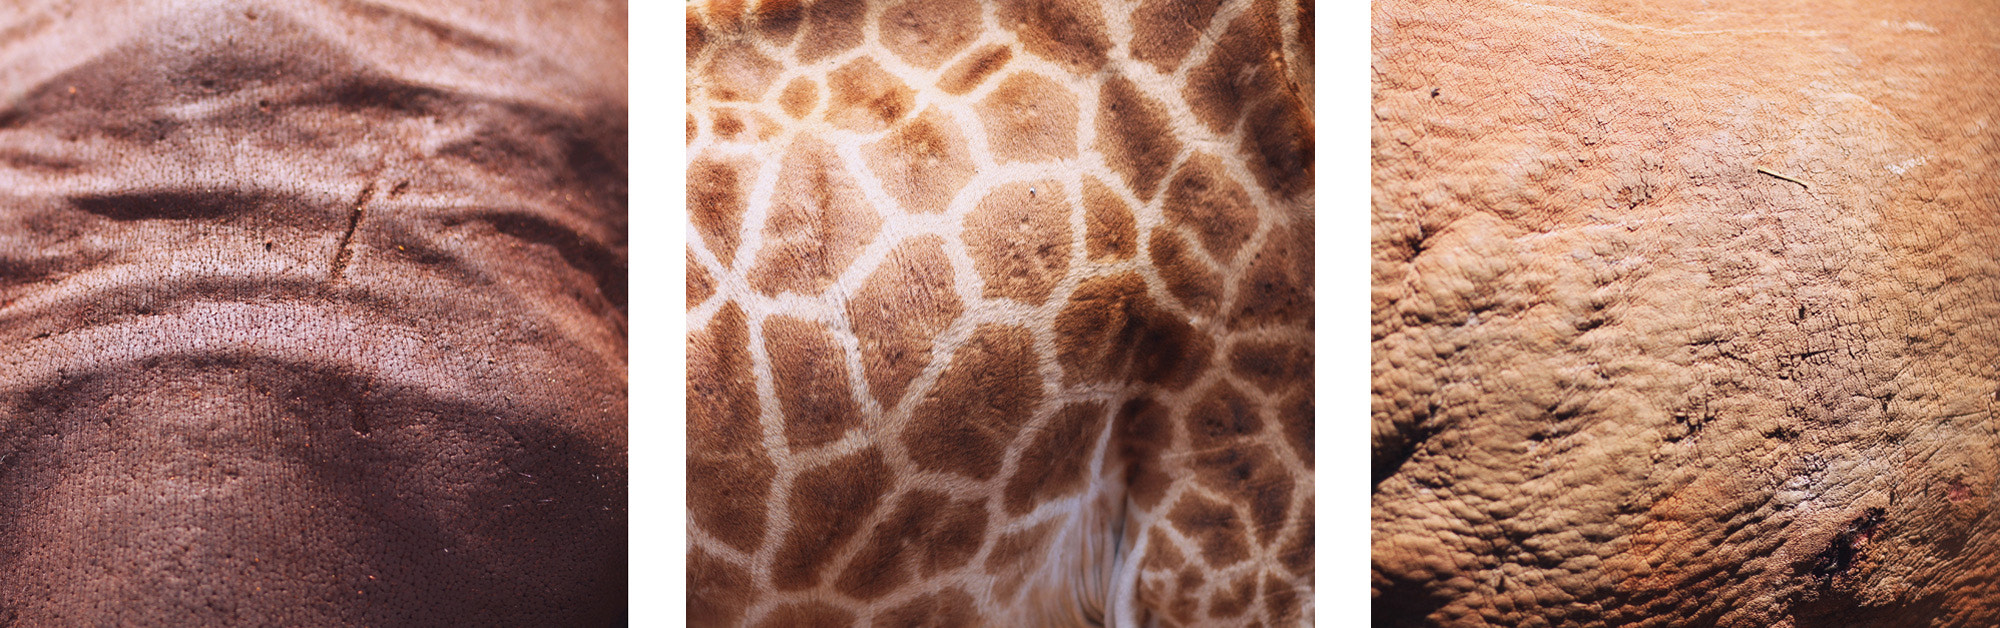 Photograph Guess the animal! by Konstantin Escher on 500px